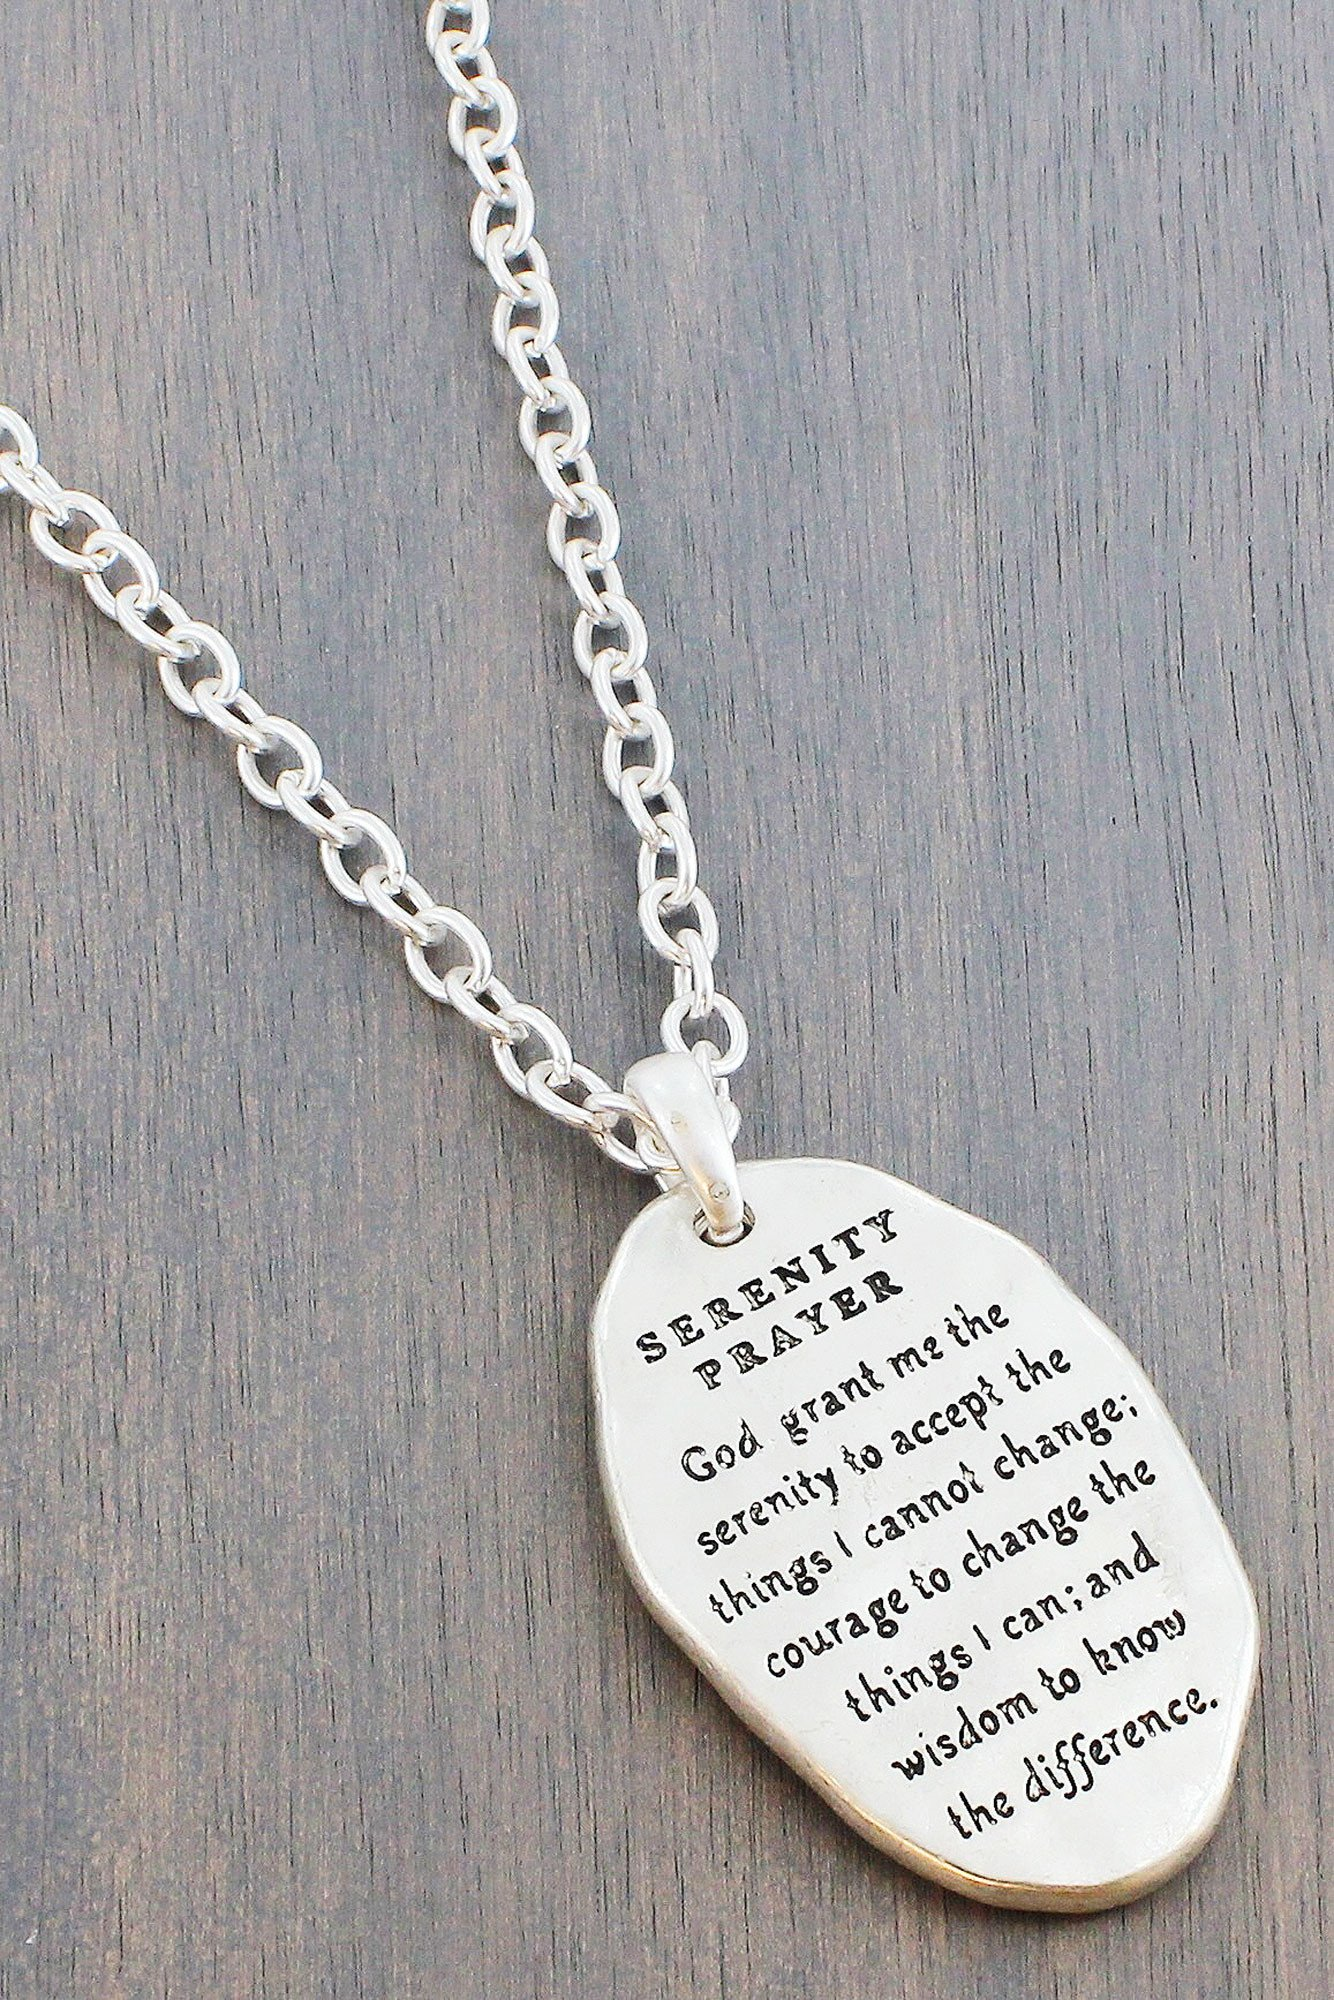 Worn two tone serenity prayer cross and disk pendant necklace worn two tone serenity aloadofball Choice Image